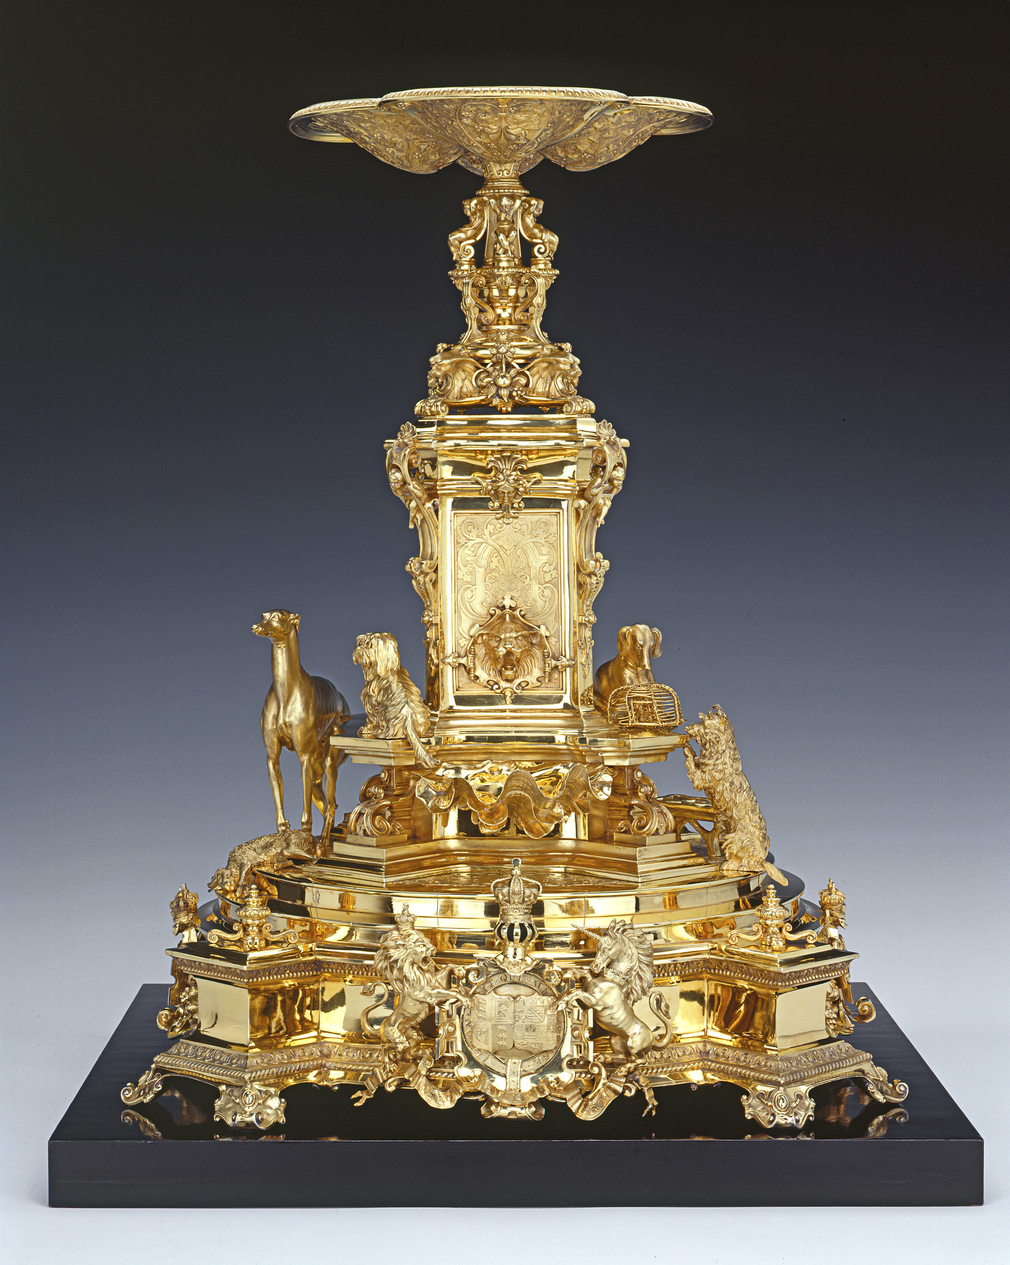 Prince Albert's close interest in design led to first-hand participation on several occasions. This centrepiece was his first collaboration with the firm of Garrards, and it seems that the combination of an Italian Renaissance-style tazza and models of fo